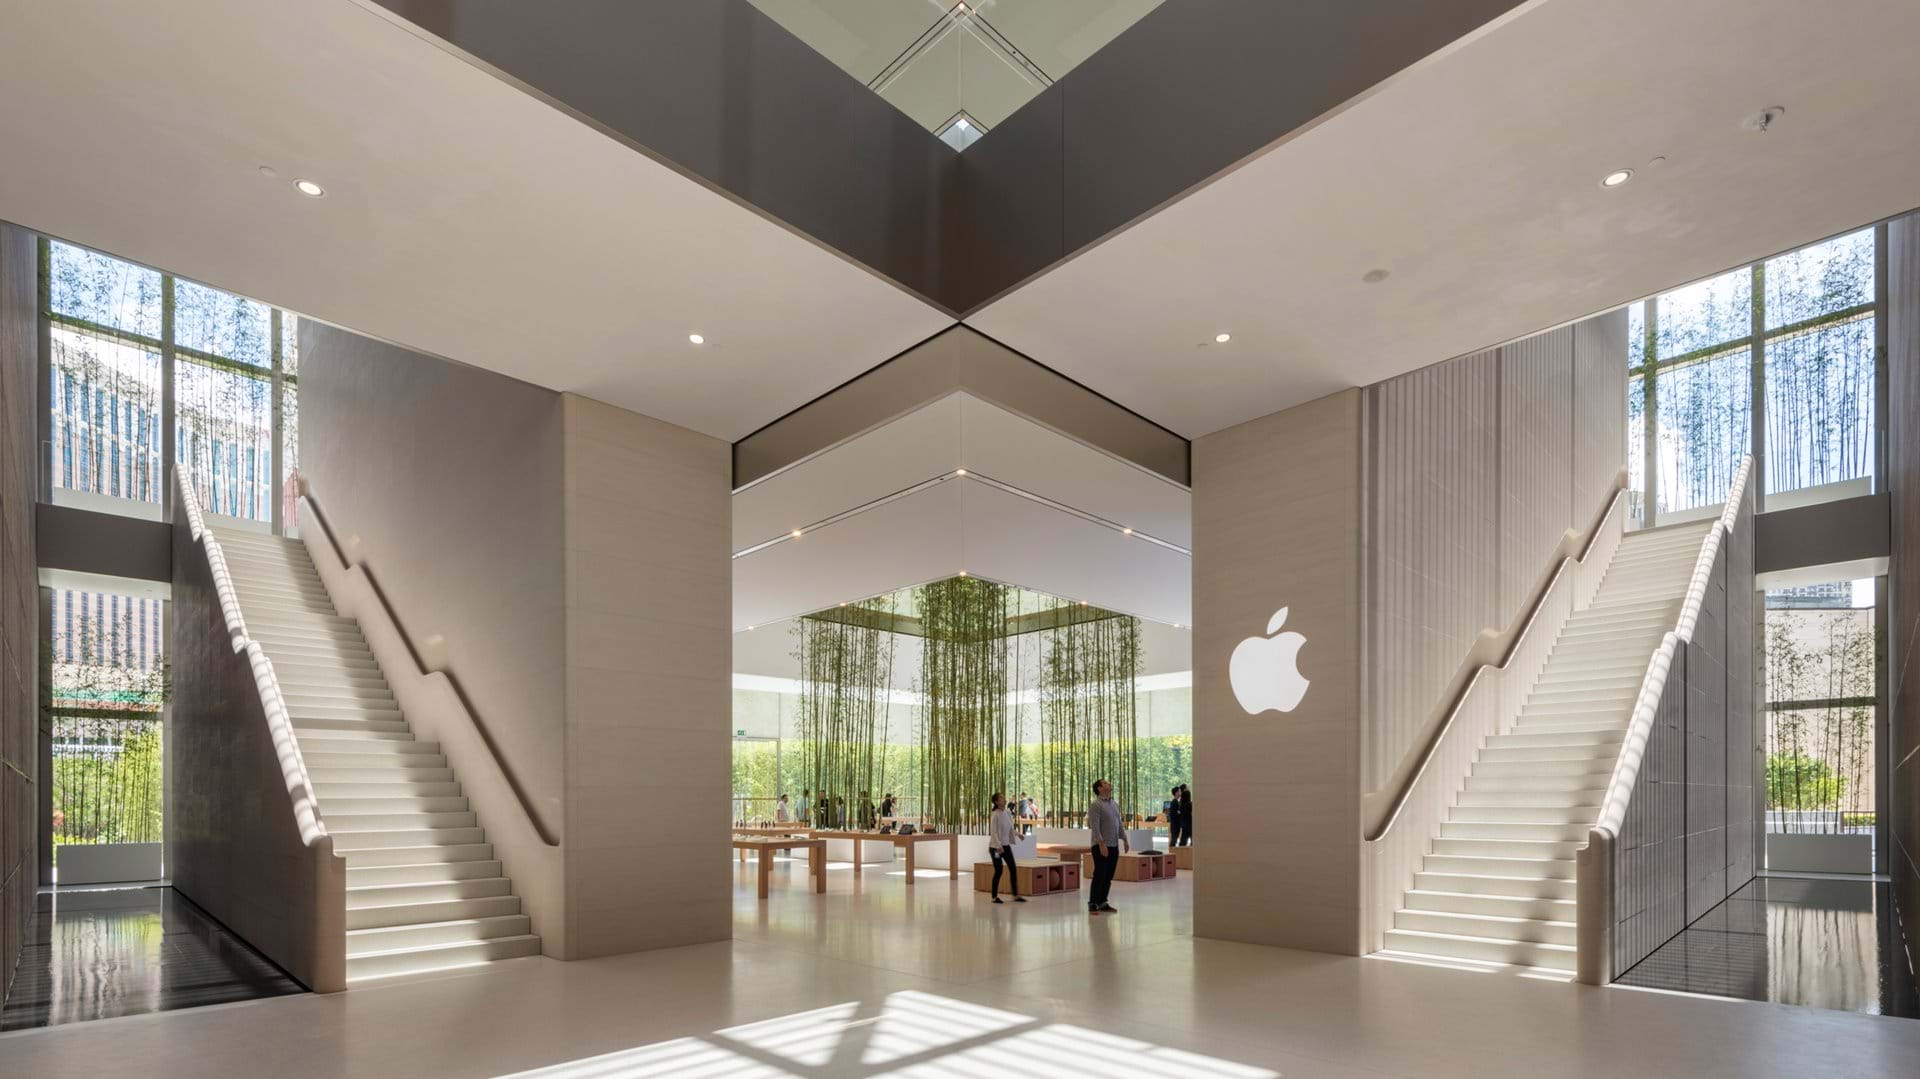 The large entrance to the Apple store in Macau